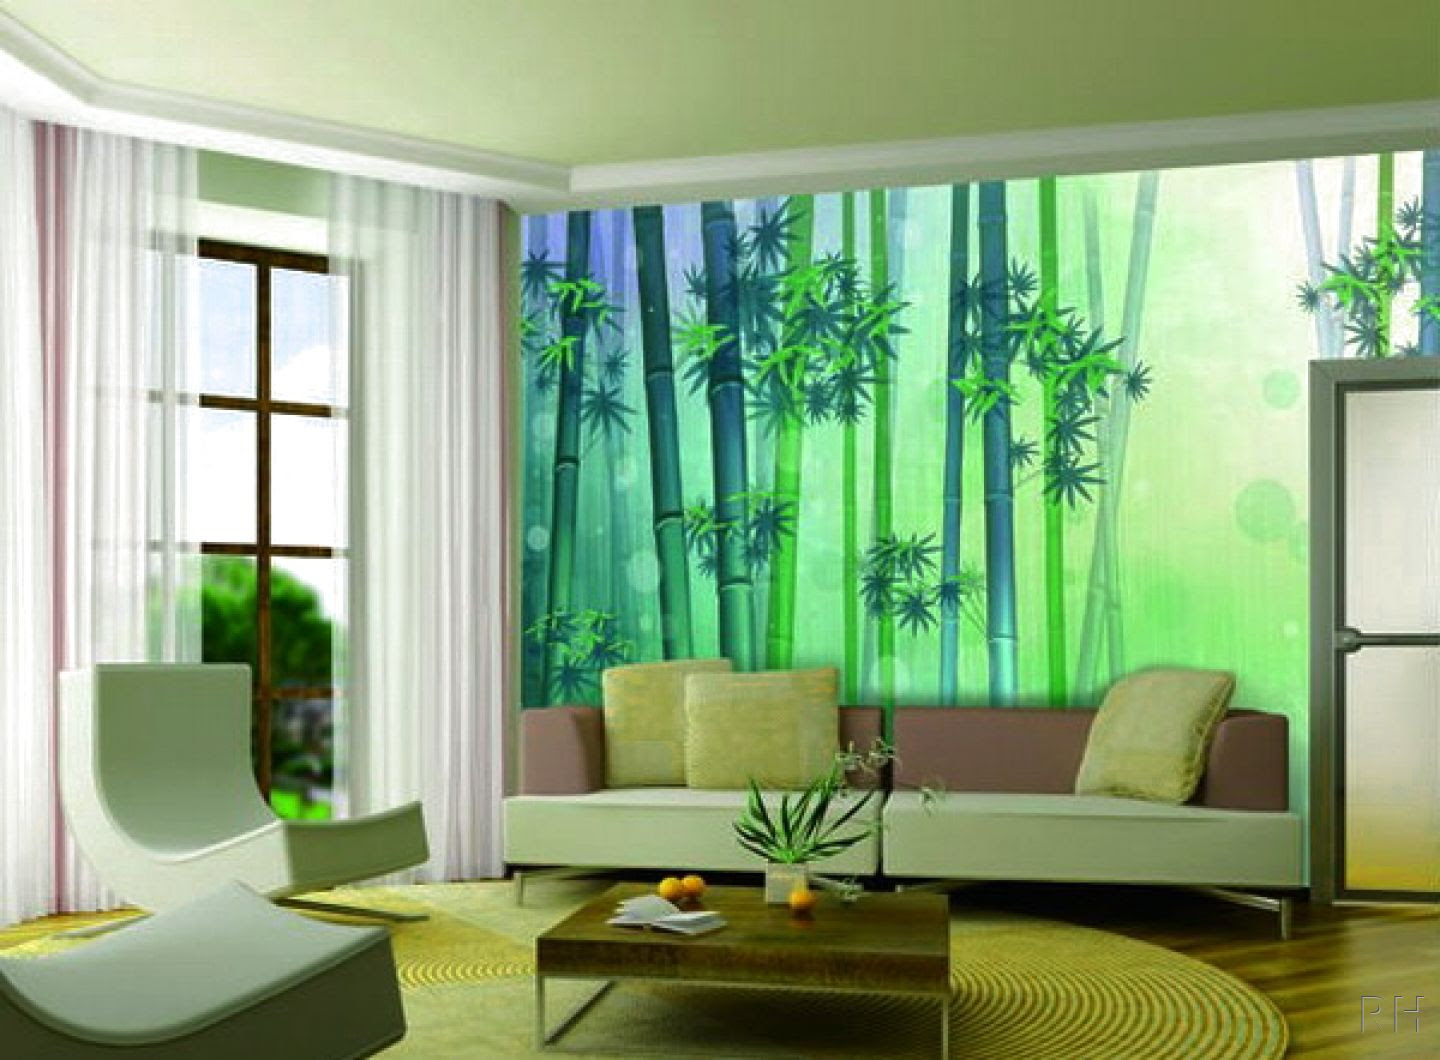 Greatest Wall Color Ideas For Home Interior Paint Designs Bedrooms Painting Living Room Colors Bedroom Kitchen Design Combination Feelings Apppie Org